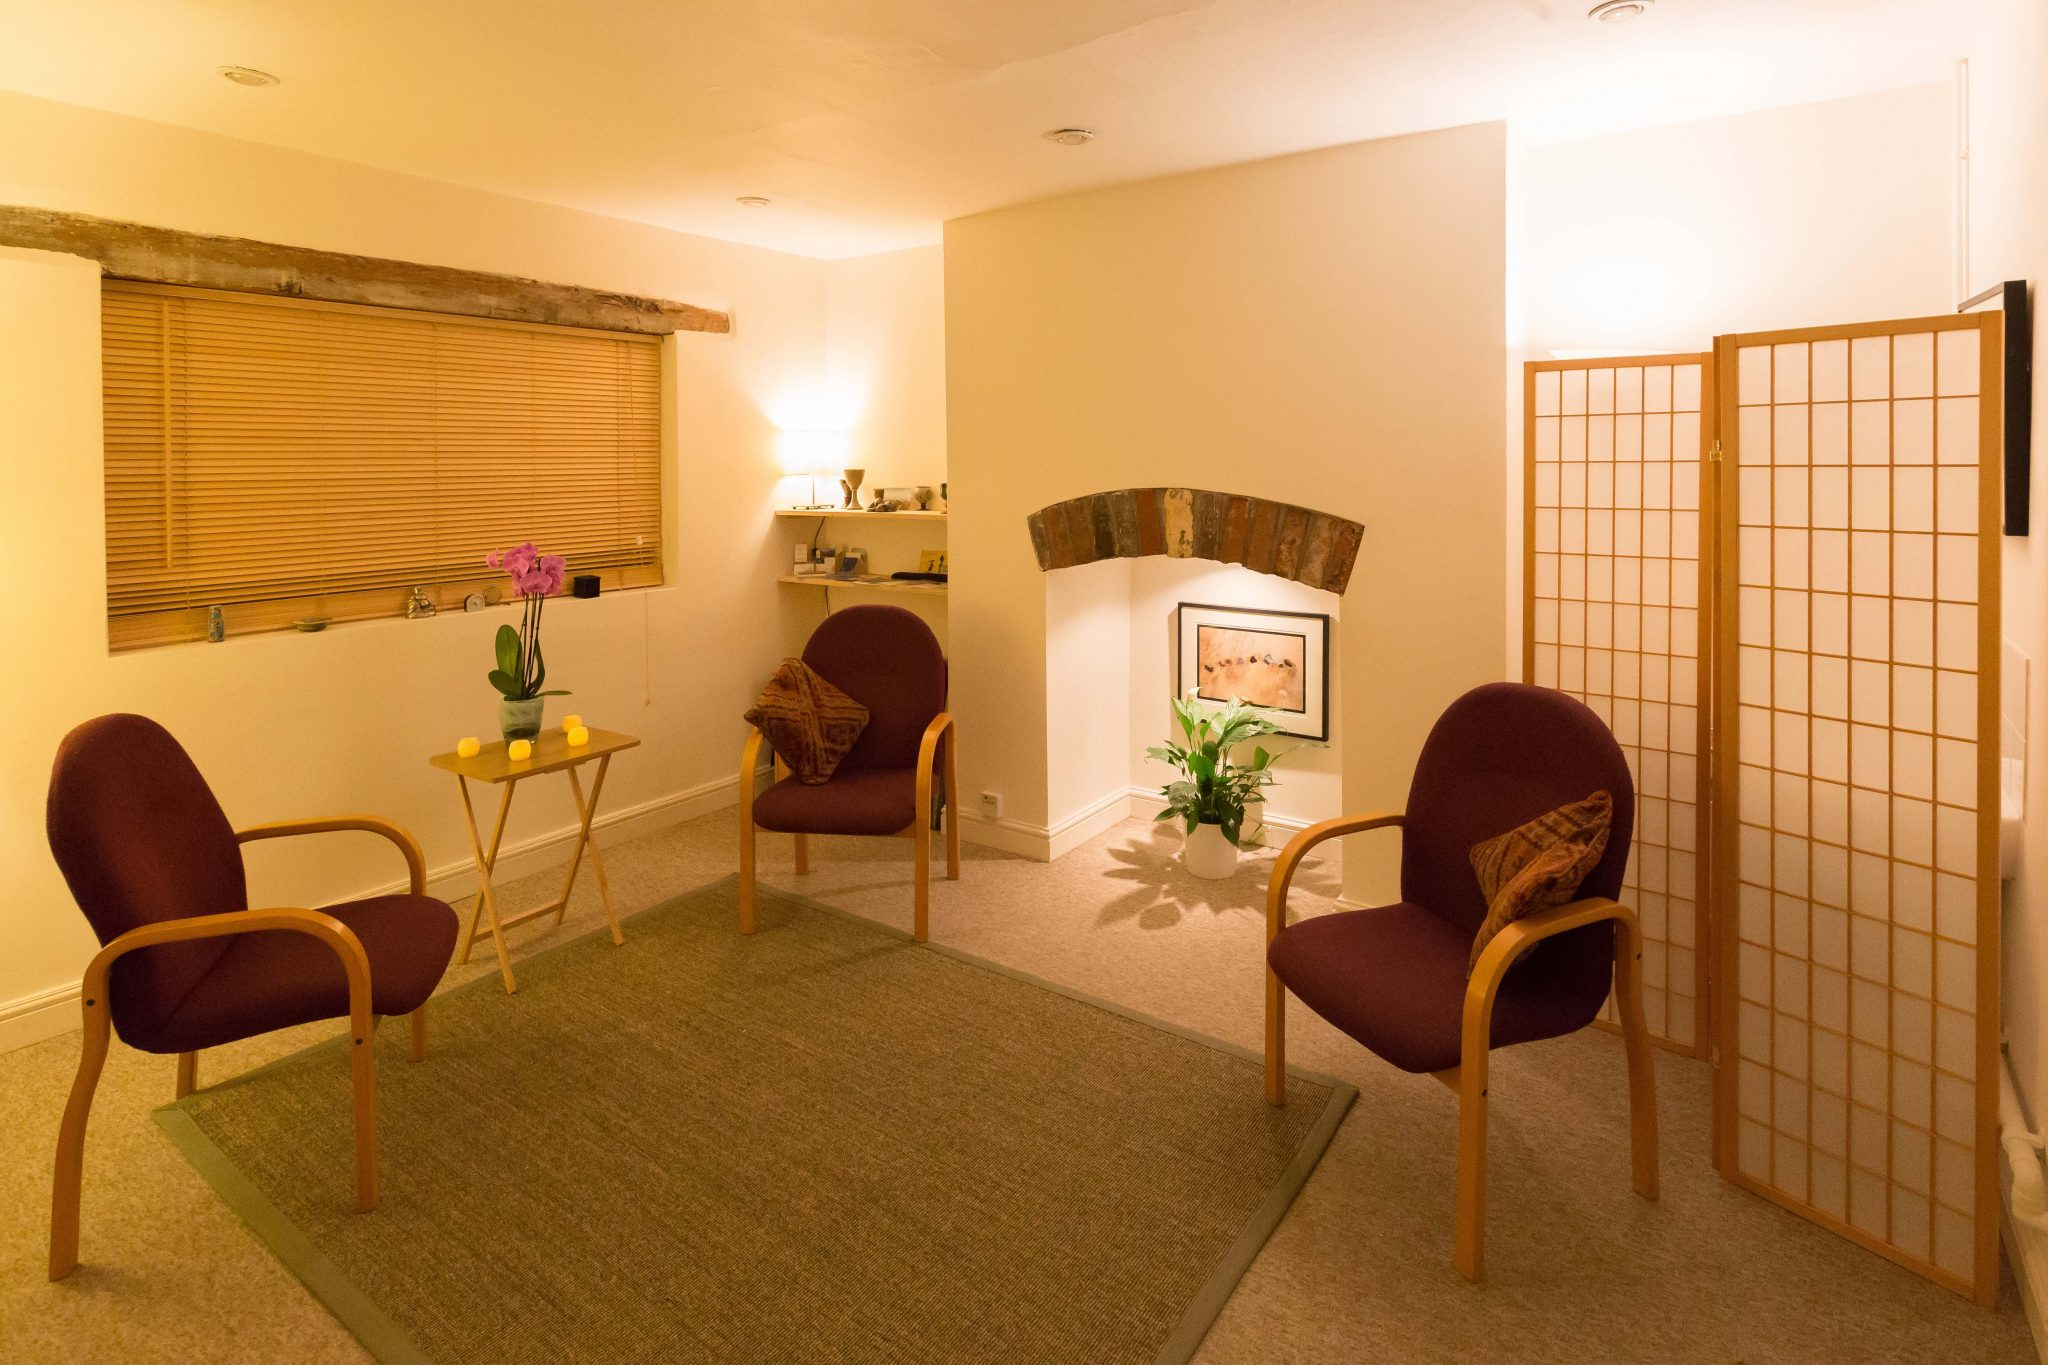 Room Hire - R3 Therapies